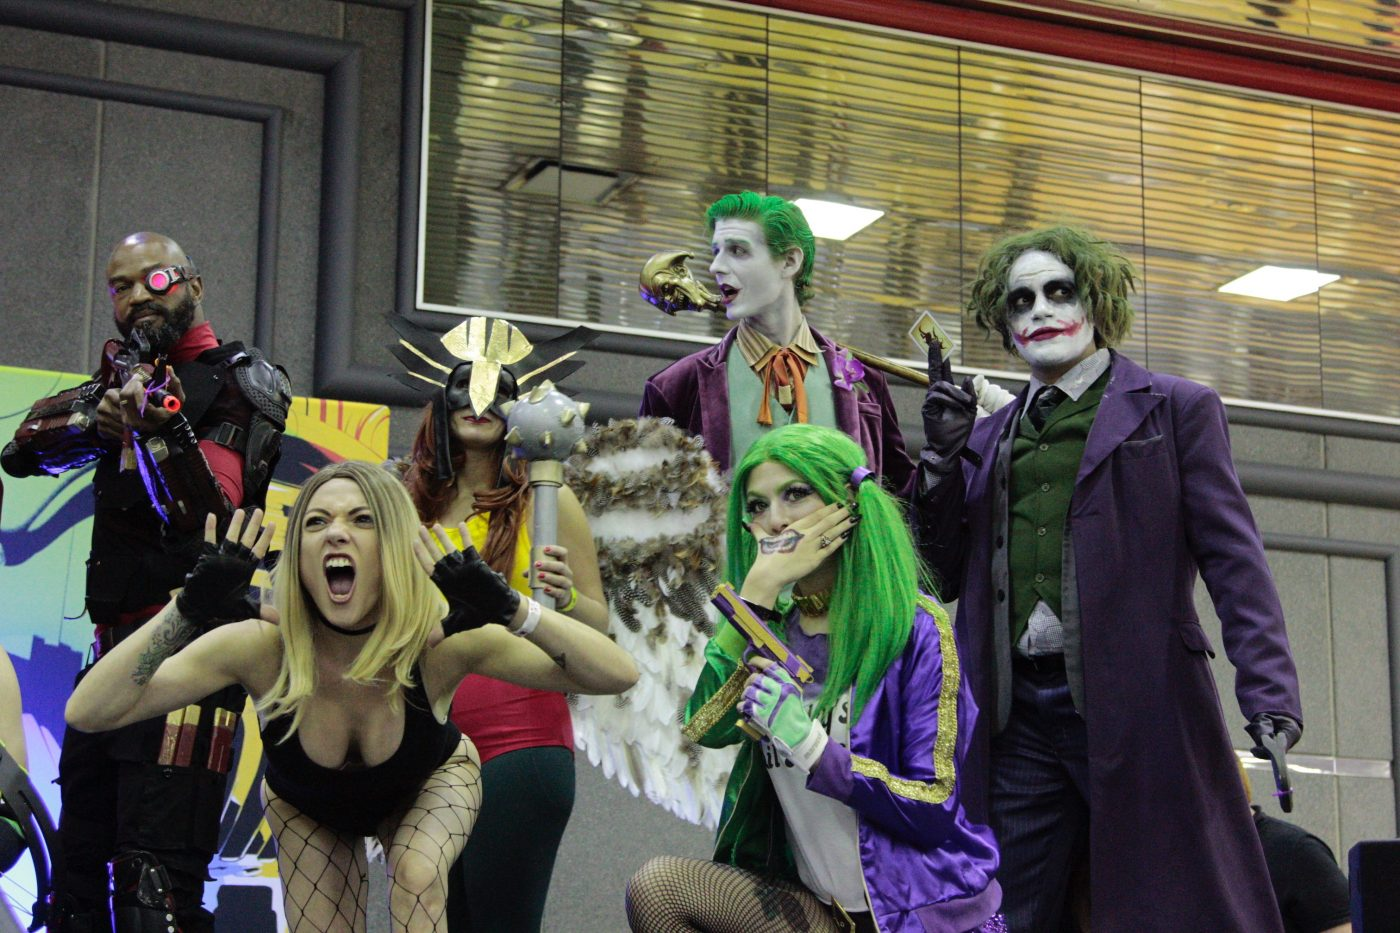 Wizard World Chicago: The best comic and video game cosplayers